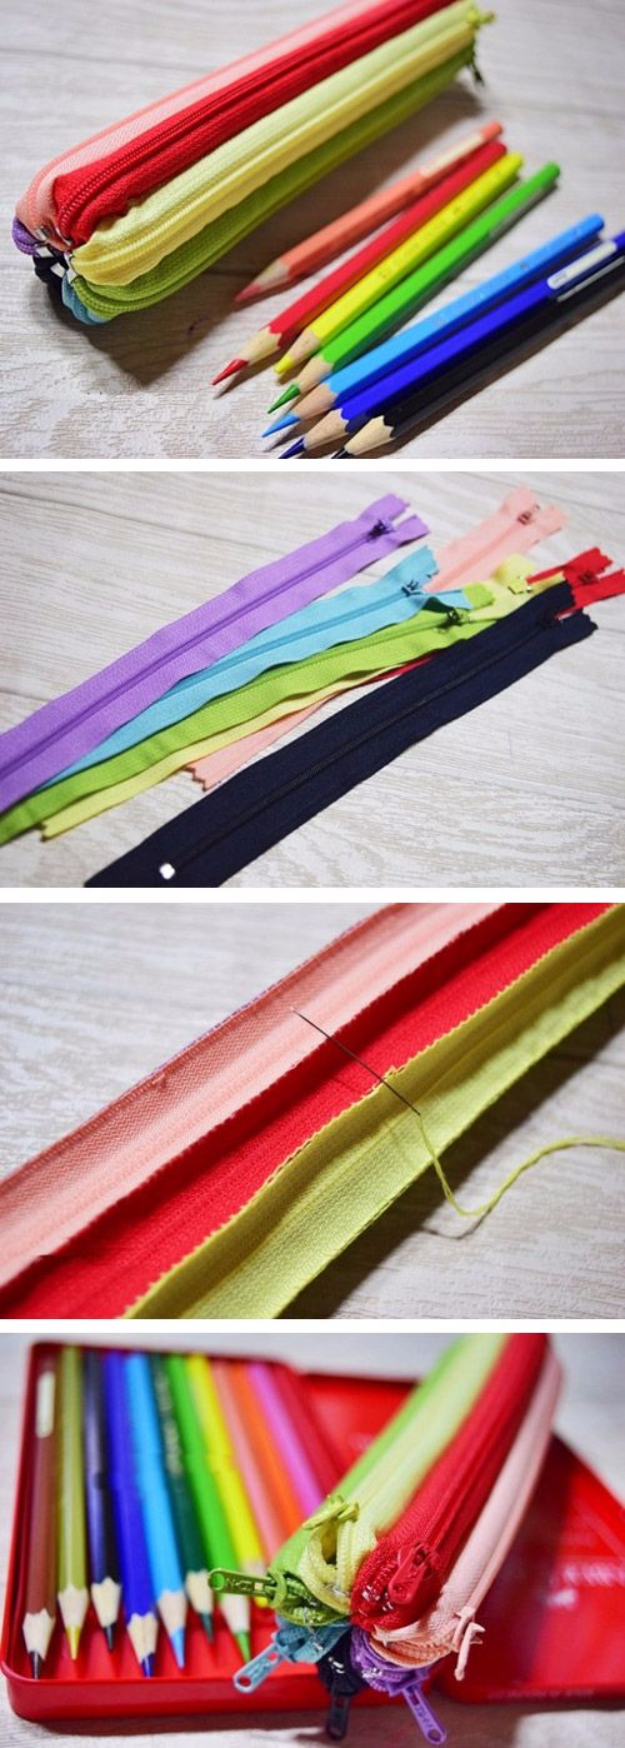 Creative DIY Projects With Zippers - Zipper Pencil Case - Easy Crafts and Fashion Ideas With A Zipper - Jewelry, Home Decor, School Supplies and DIY Gift Ideas - Quick DIYs for Fun Weekend Projects